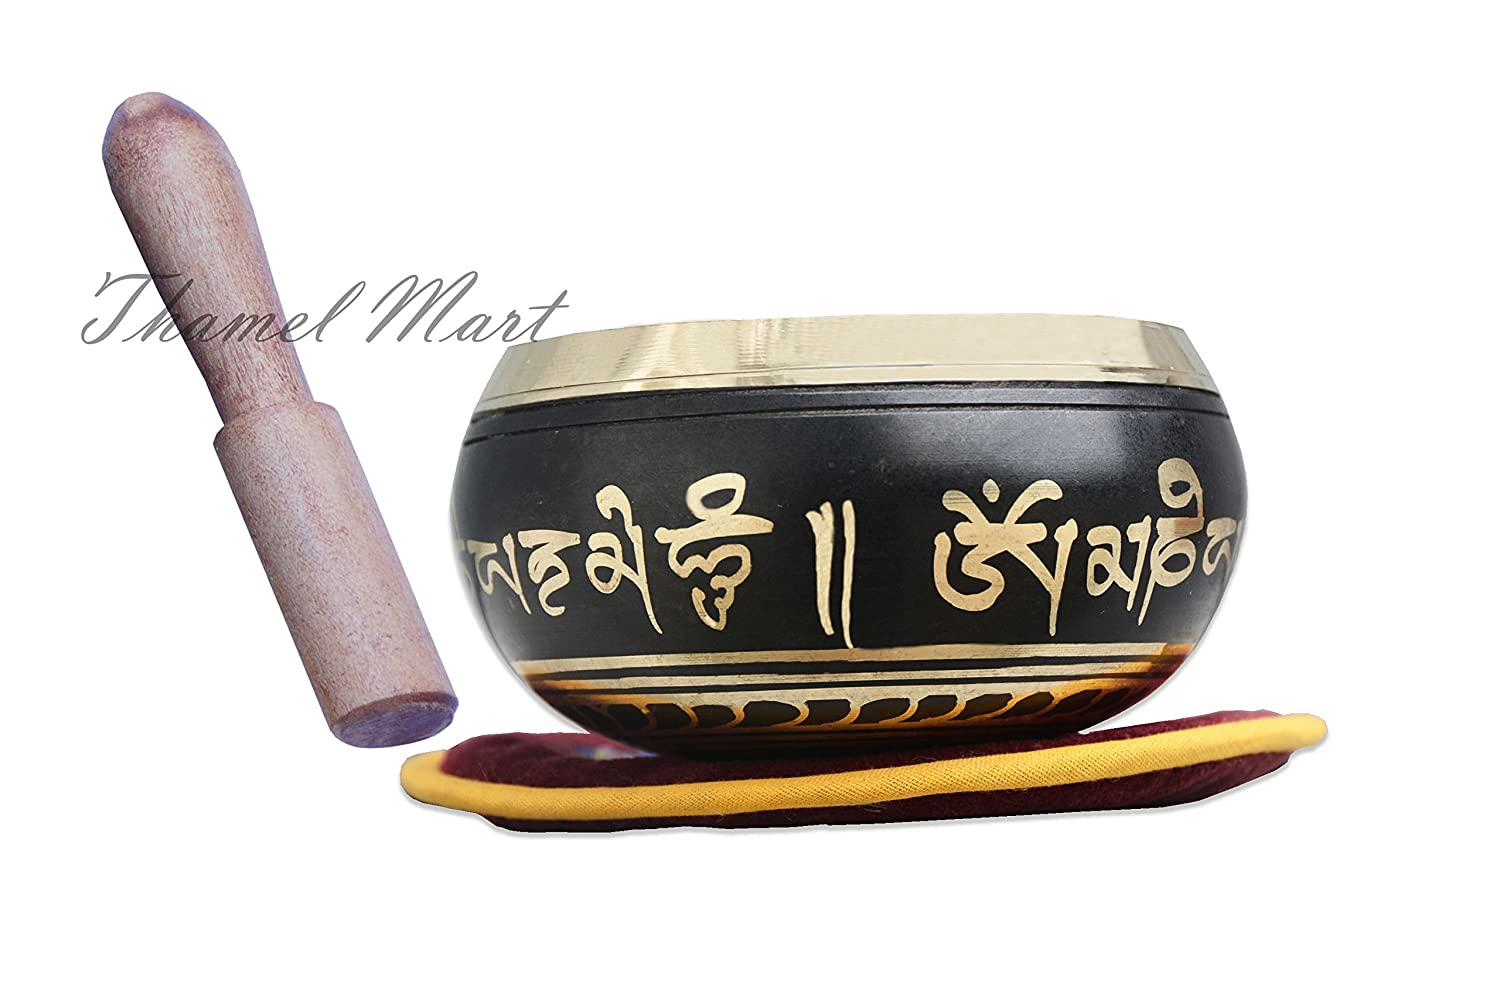 Meditation Om Mani Padme Hum Peace Wooden Striker & Cushion SINGING BOWL HOUSE P. Ltd. tha-4231